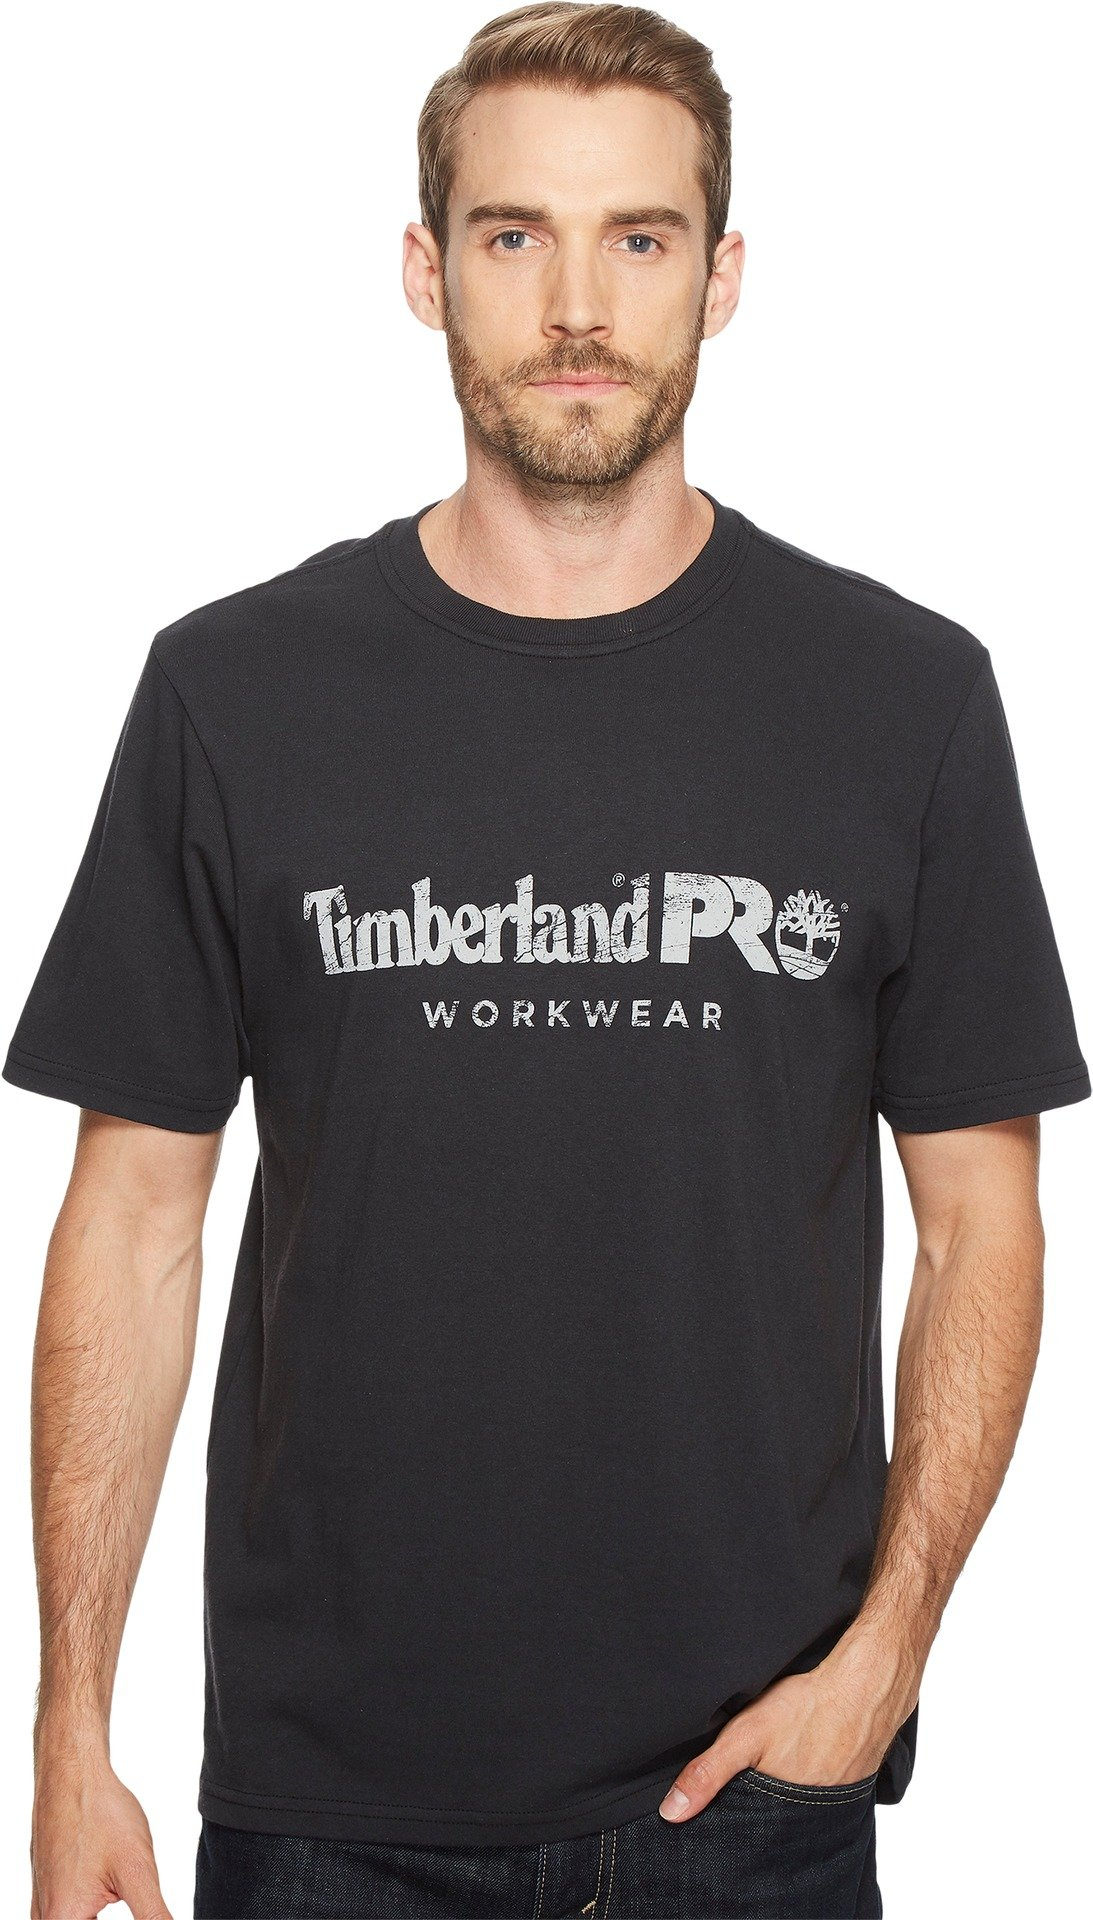 Timberland PRO Men's Cotton Core Short-Sleeve T-Shirt, Jet Black, X-Large